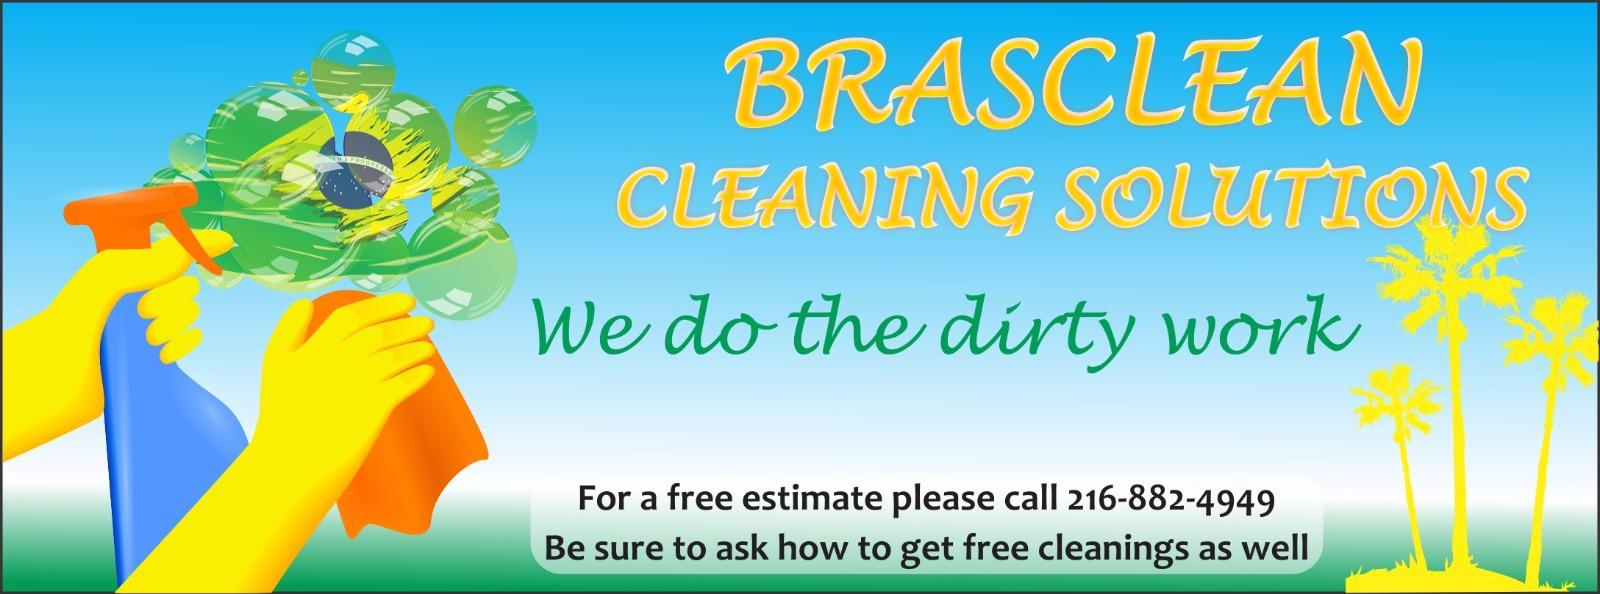 Brasclean Cleaning Solutions image 0